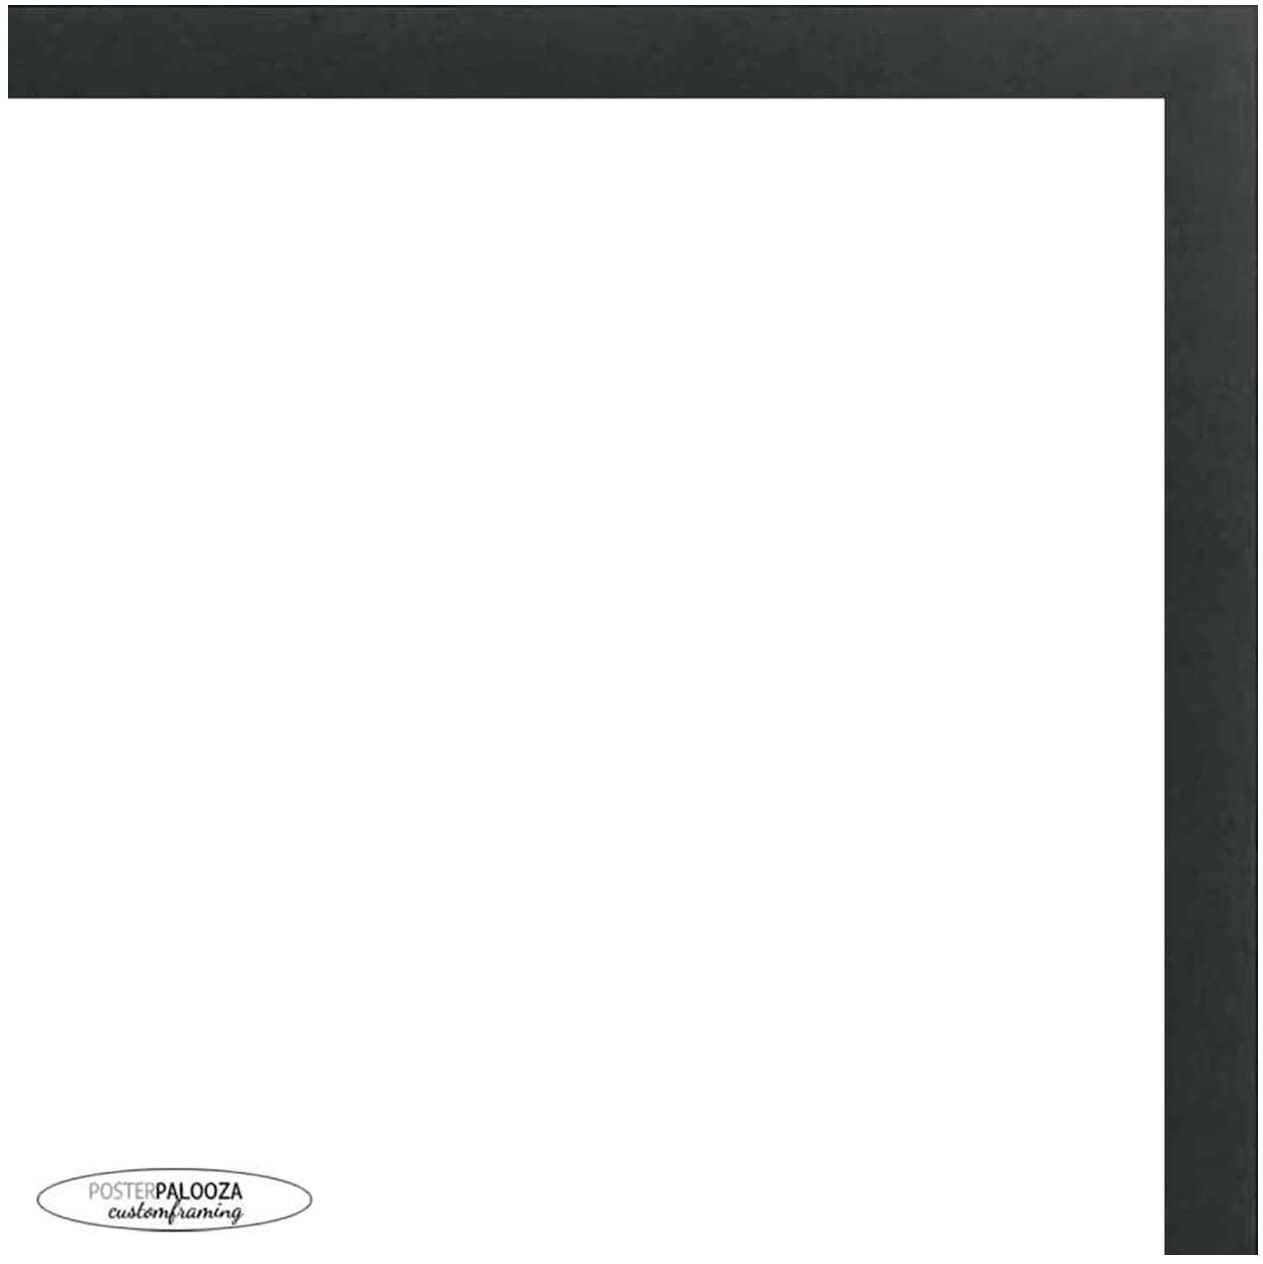 Poster Palooza 22x22 Contemporary Black Wood Picture Square Frame - UV Acrylic, Foam Board Backing, Hanging Hardware Included!